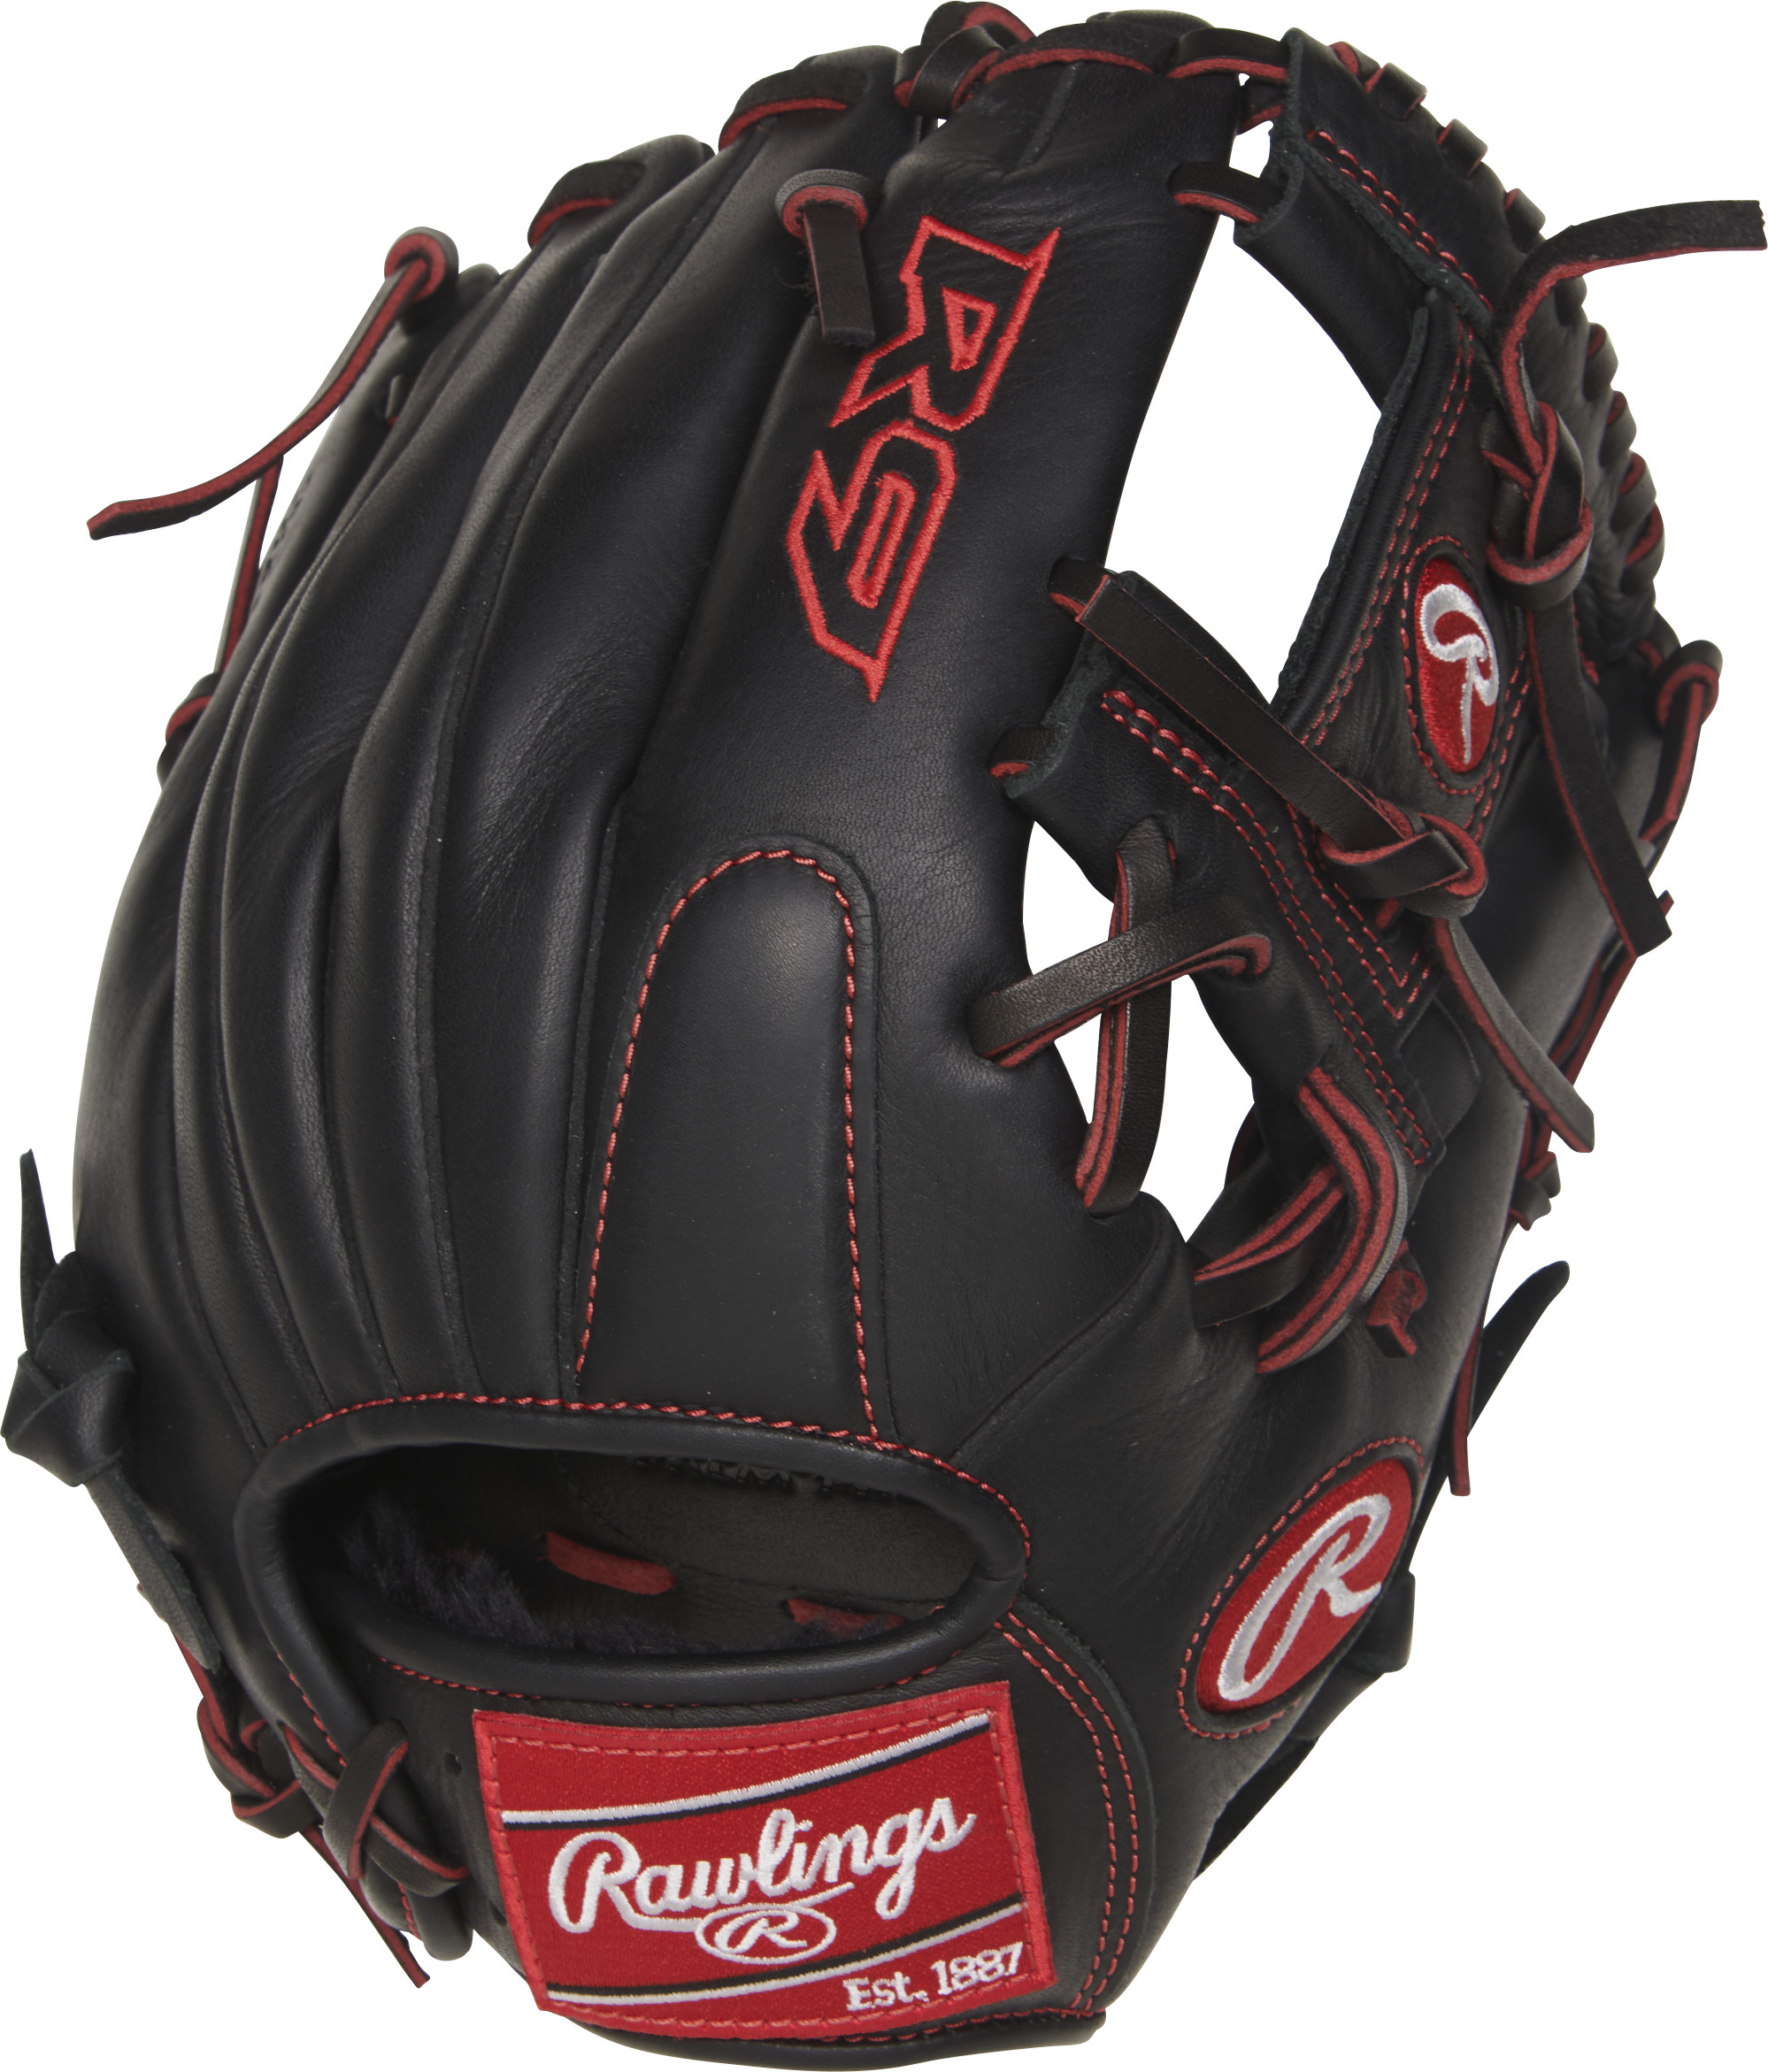 http://www.bestbatdeals.com/images/gloves/rawlings/R9YPT2-2B-2.jpg